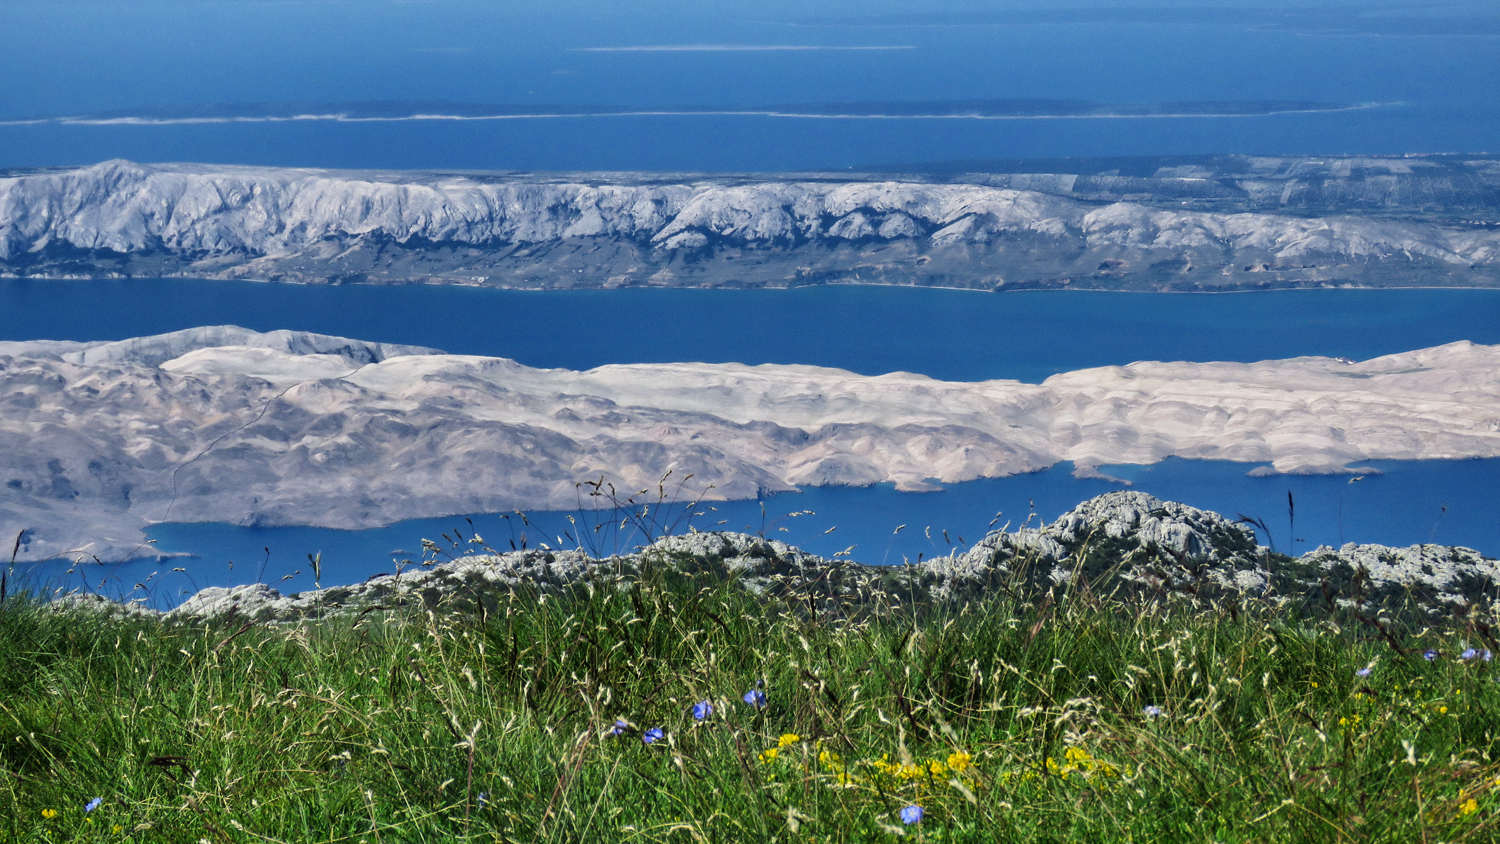 velebit - jadransko more